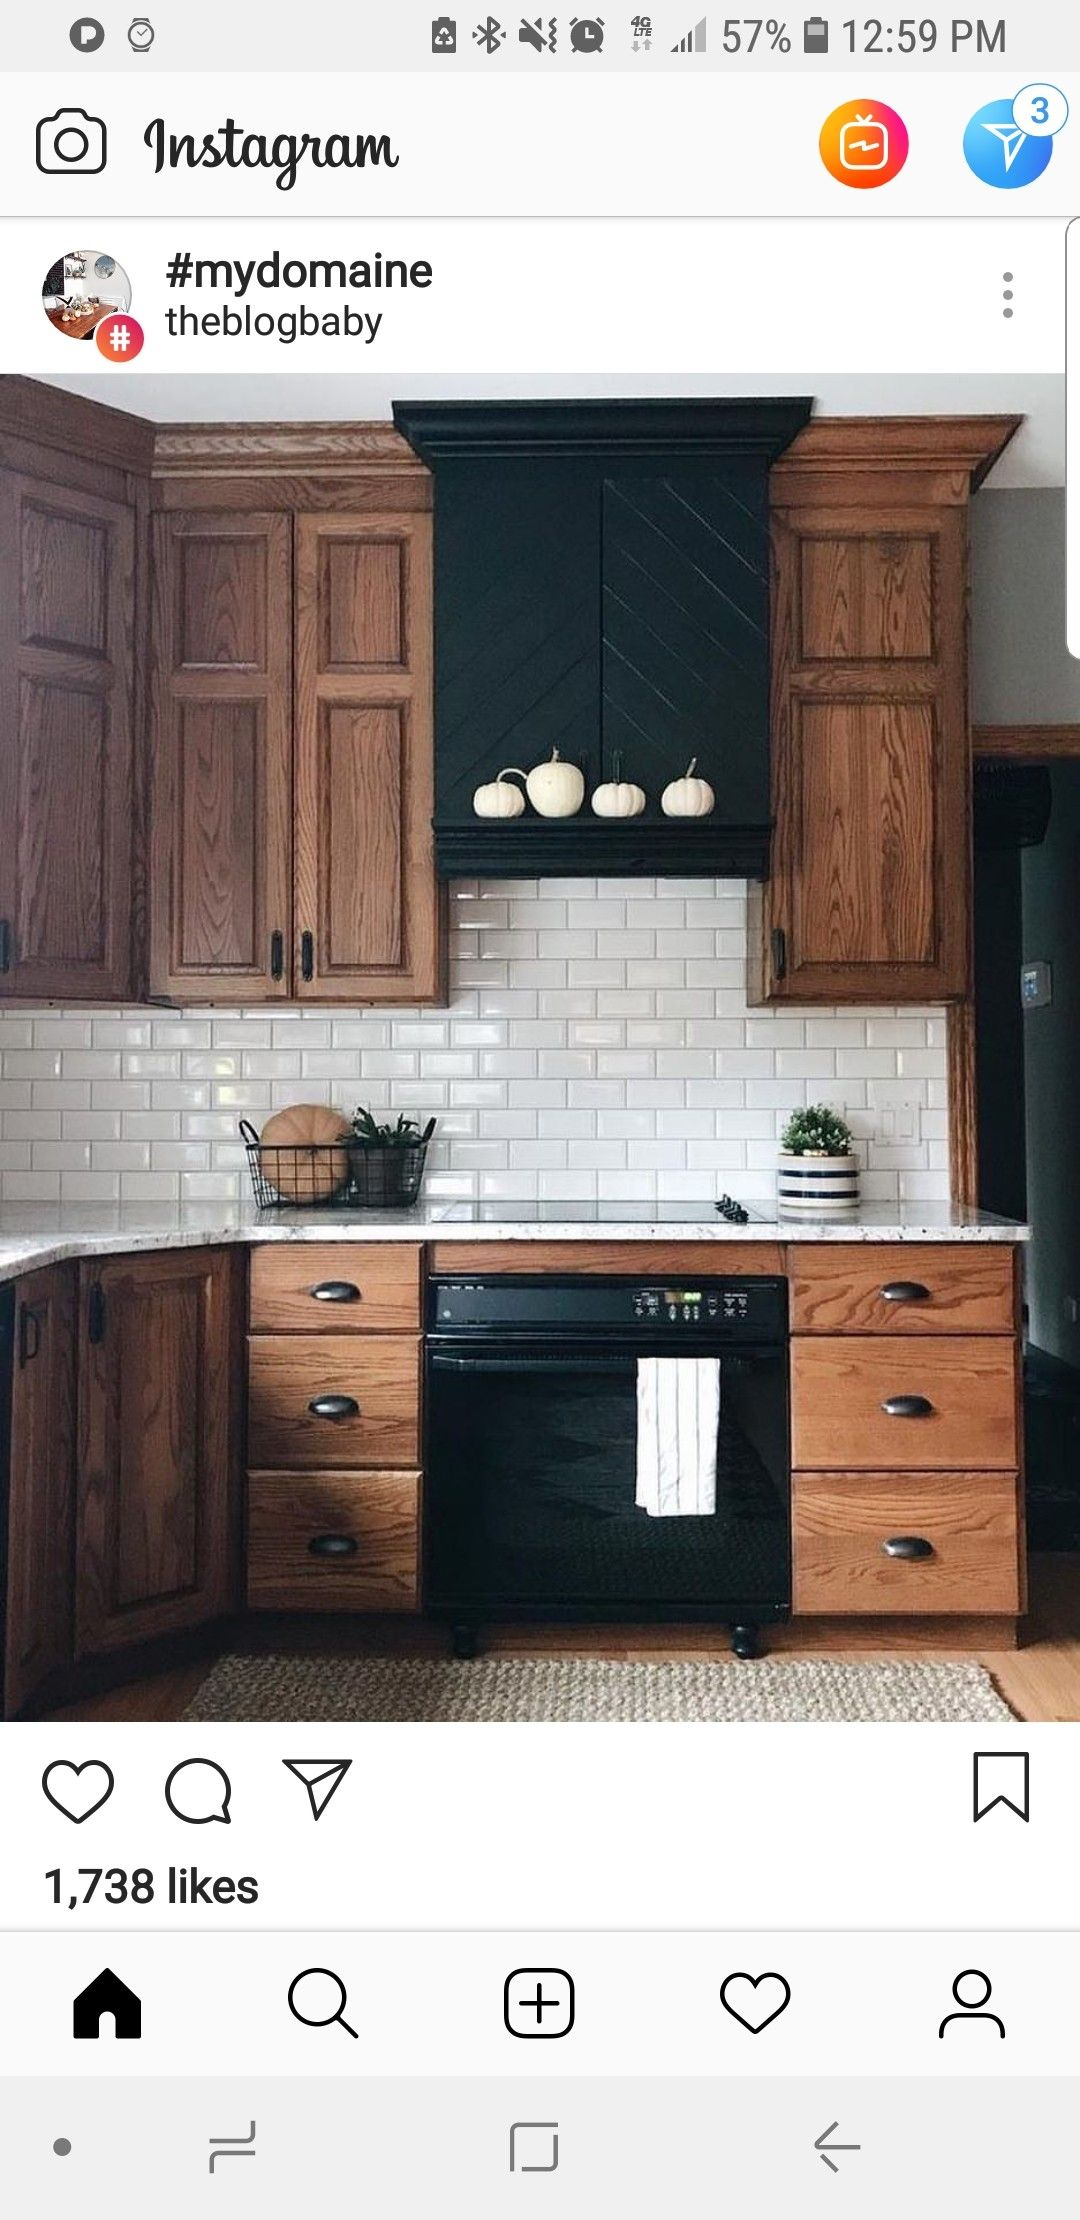 Kitchen Cabinets With Handles In Middle Mid Tone Oak Cabinets In Kitchen. Black Hardware And White